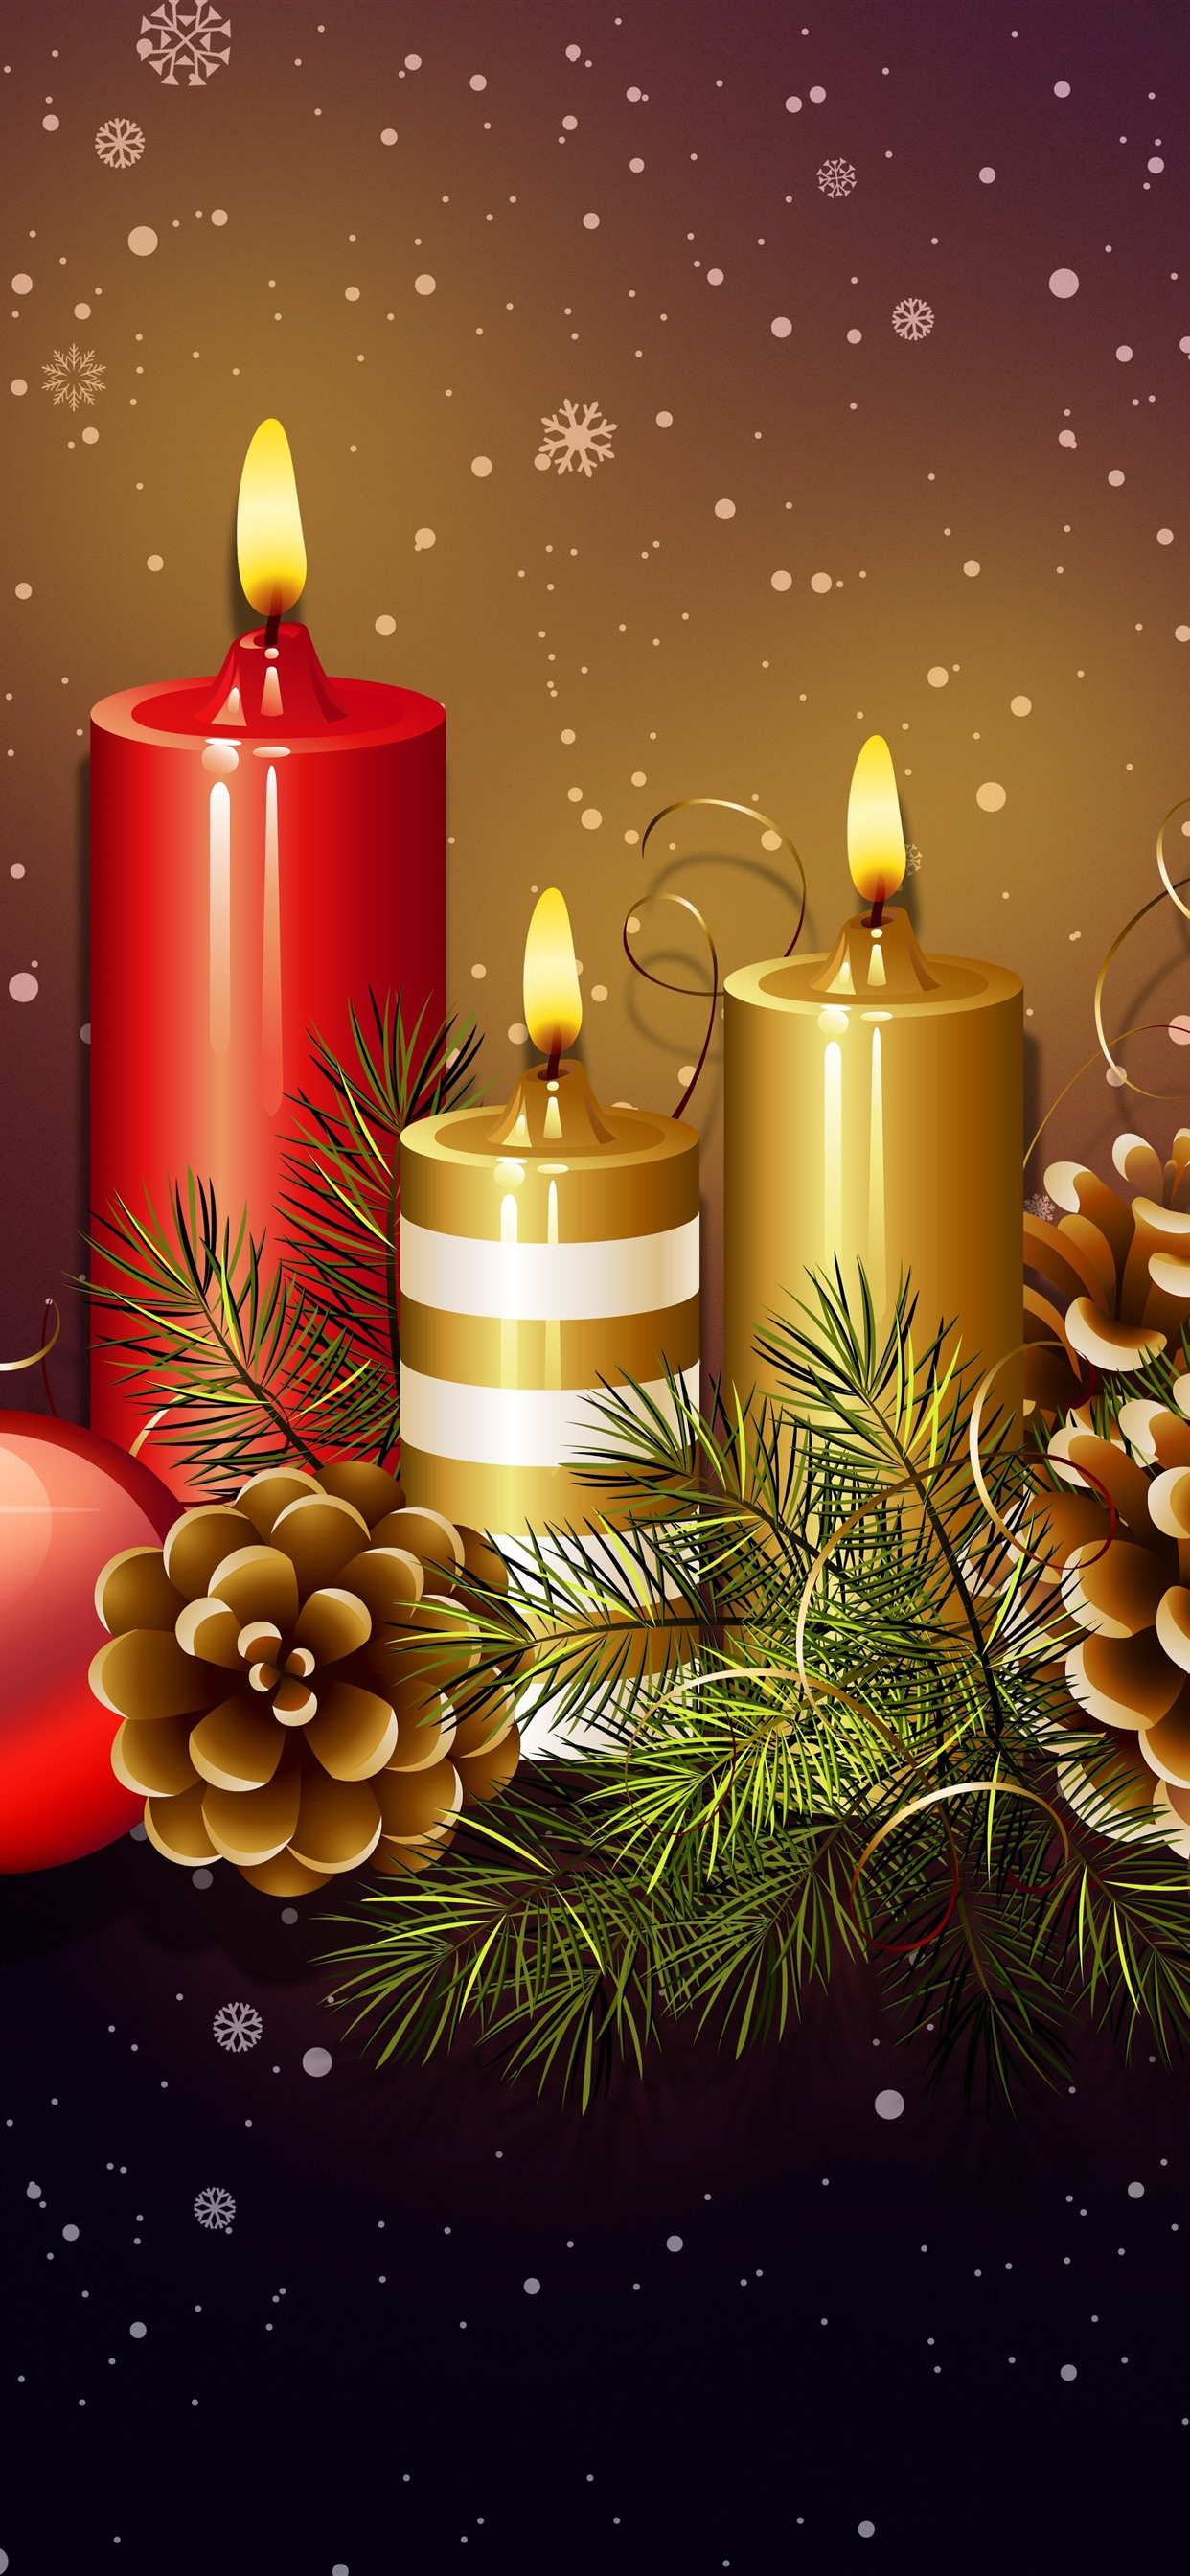 Wallpaper Candles, flame, Christmas balls, decoration, snowflakes, art  picture 7680x4320 UHD 8K Picture, Image